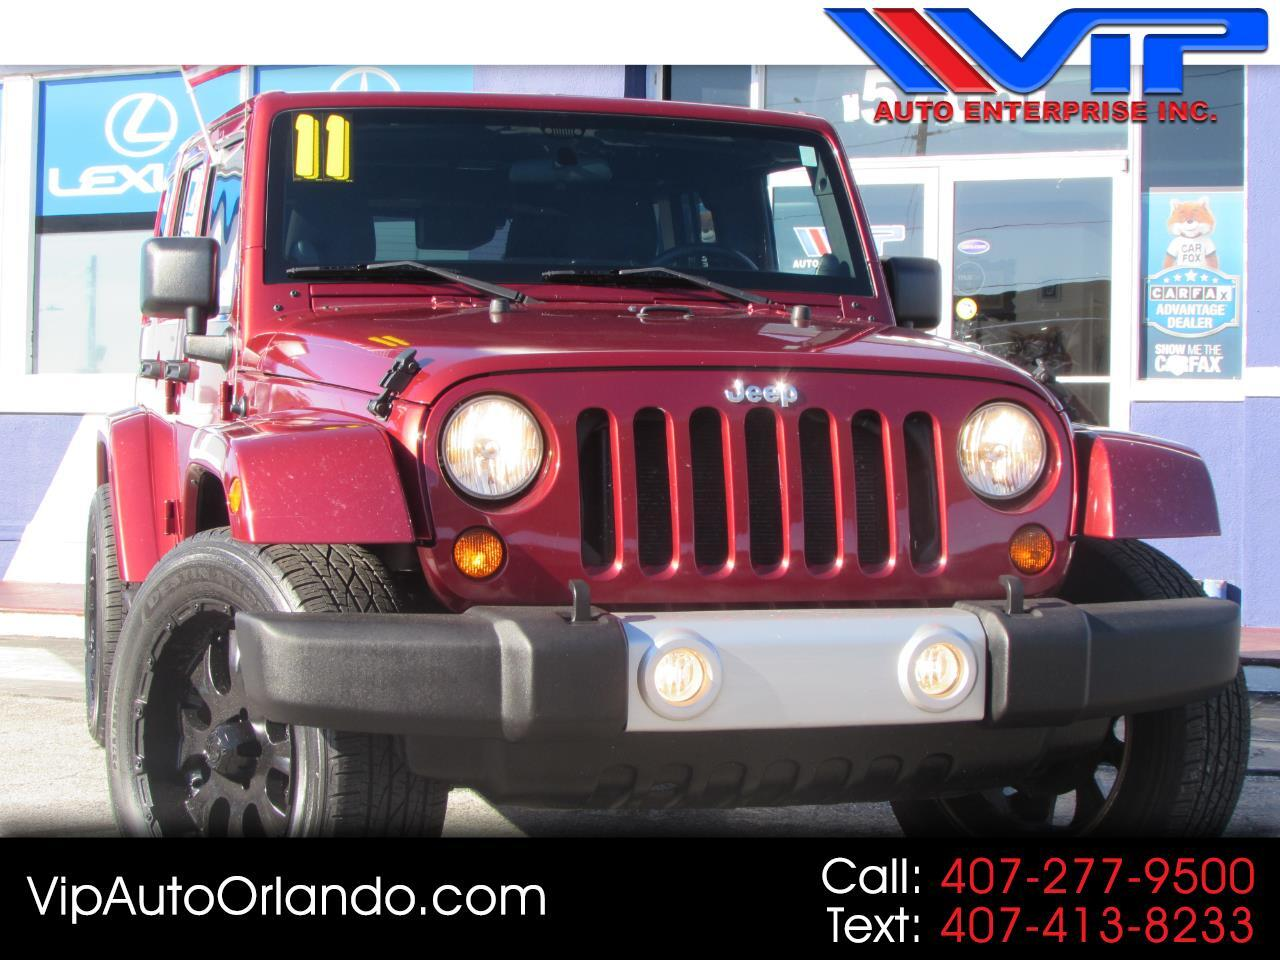 2011 Jeep Wrangler Unlimited 4WD 4dr Sahara Unlimited